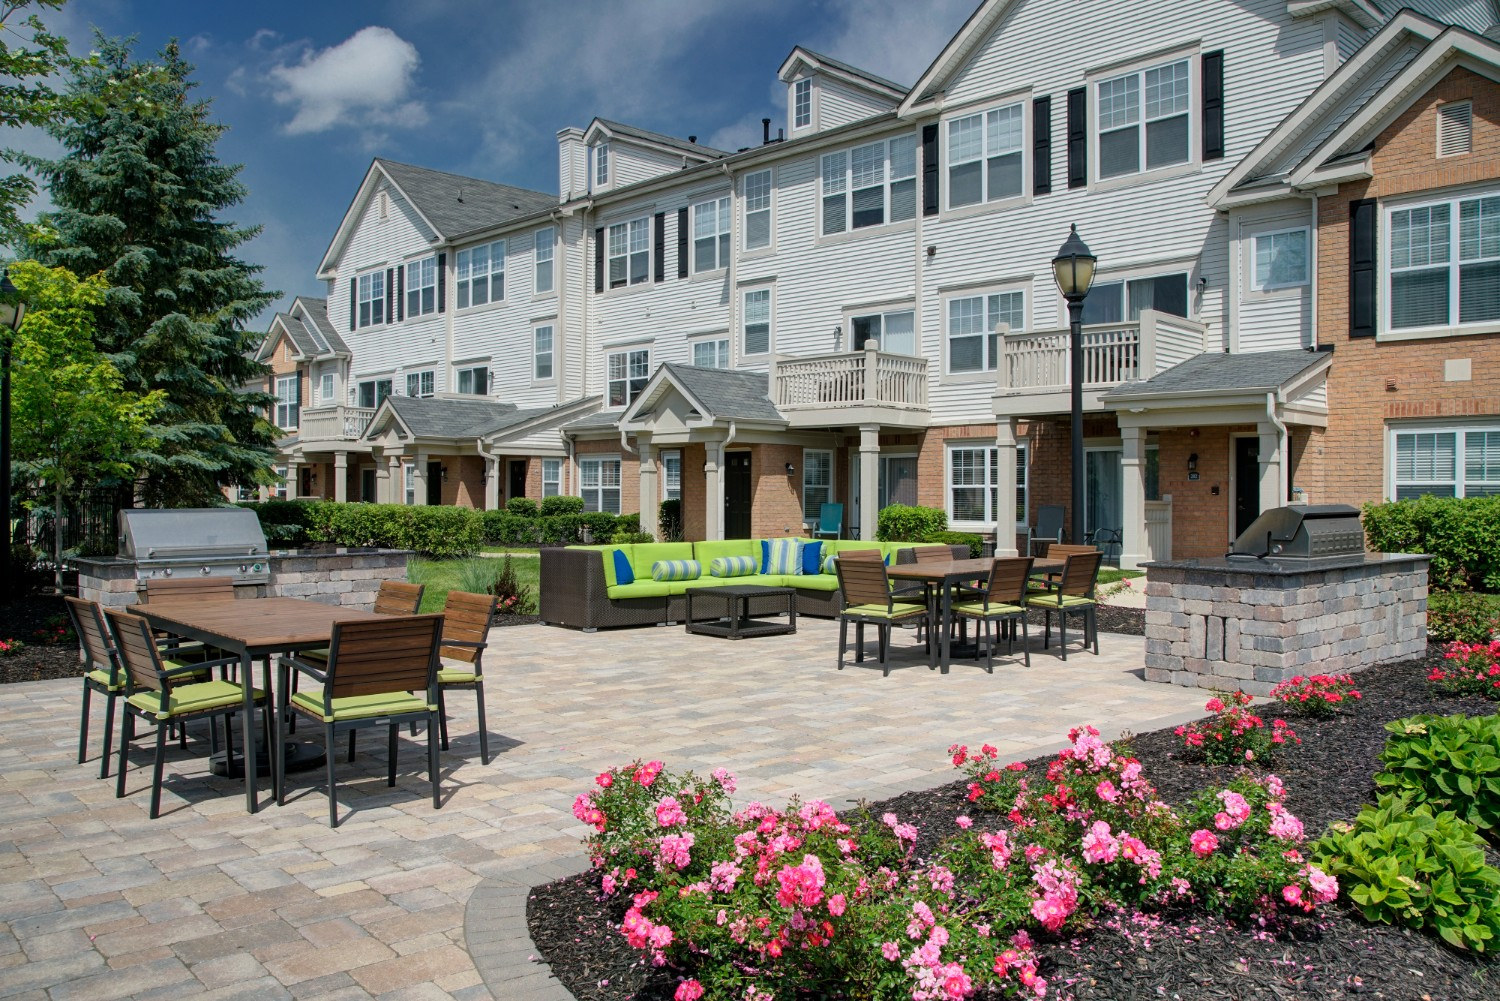 Luxury Apartments with Outdoor Lounge and Grilling Area- River Run at Naperville Apartments